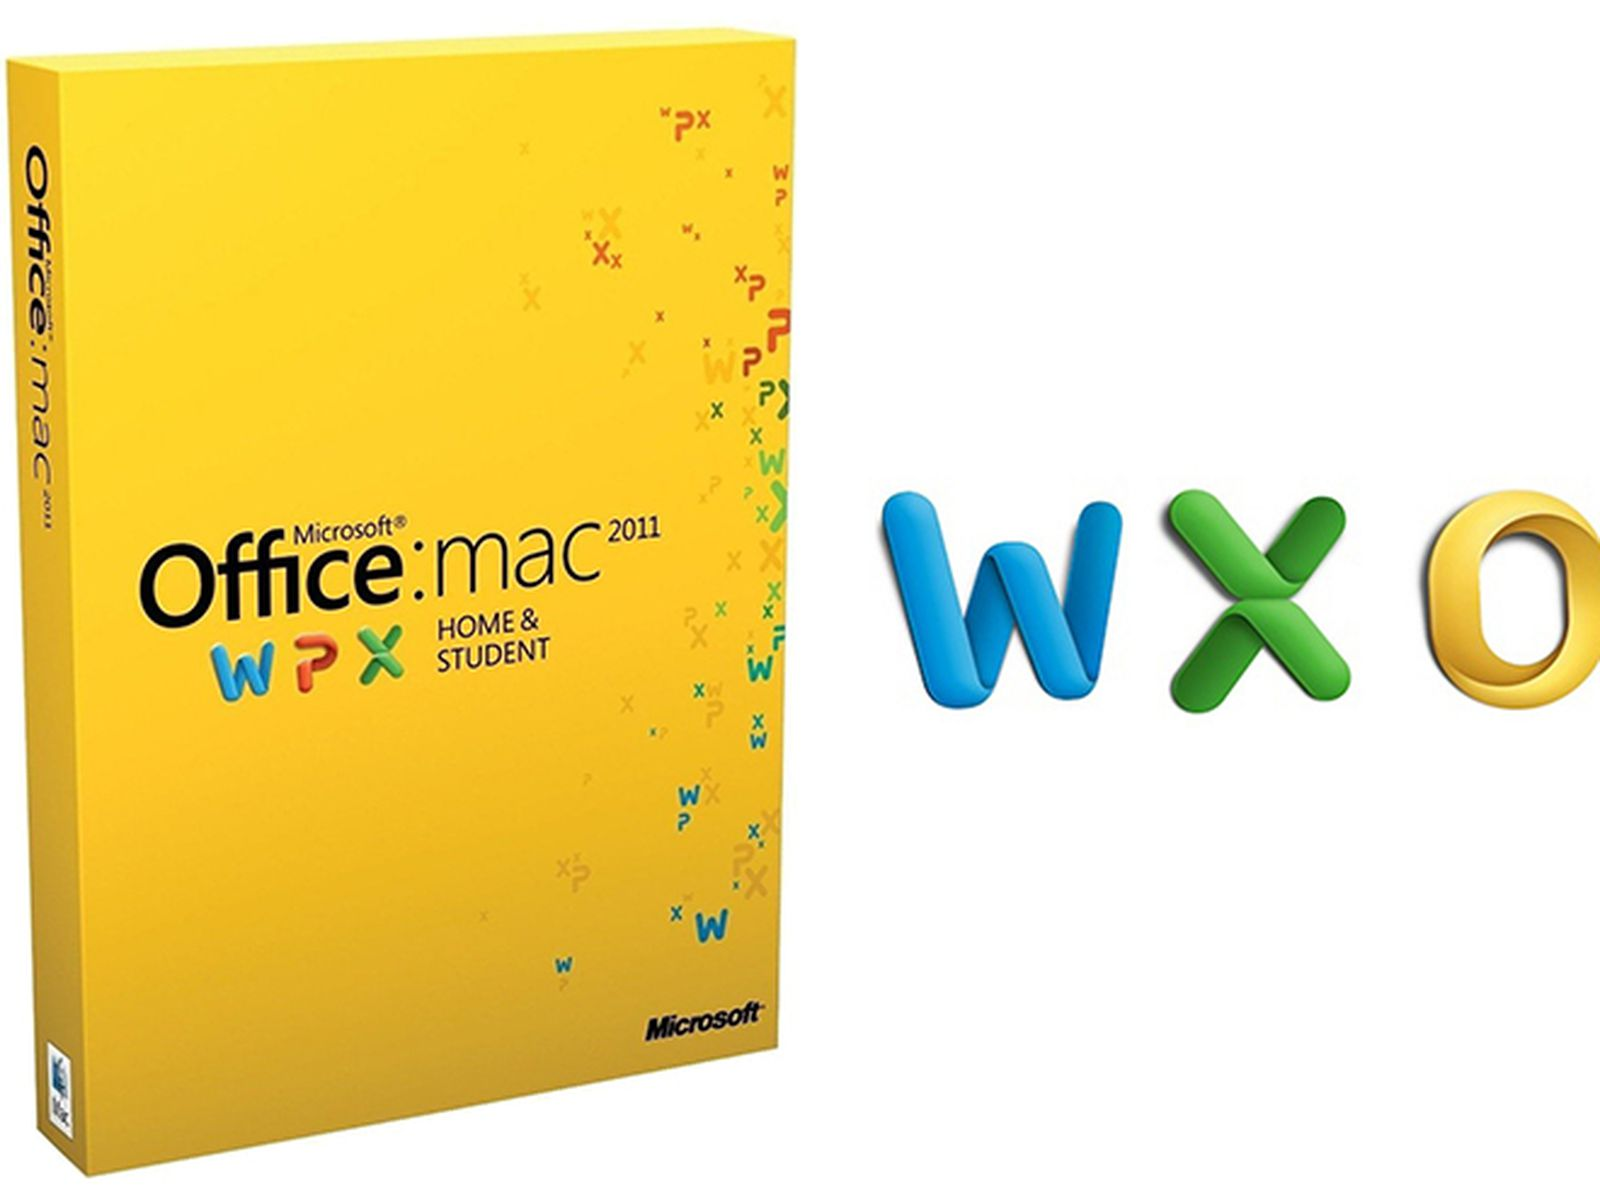 Download Msoffice 2011 Home And Student Family Pack Mac Os